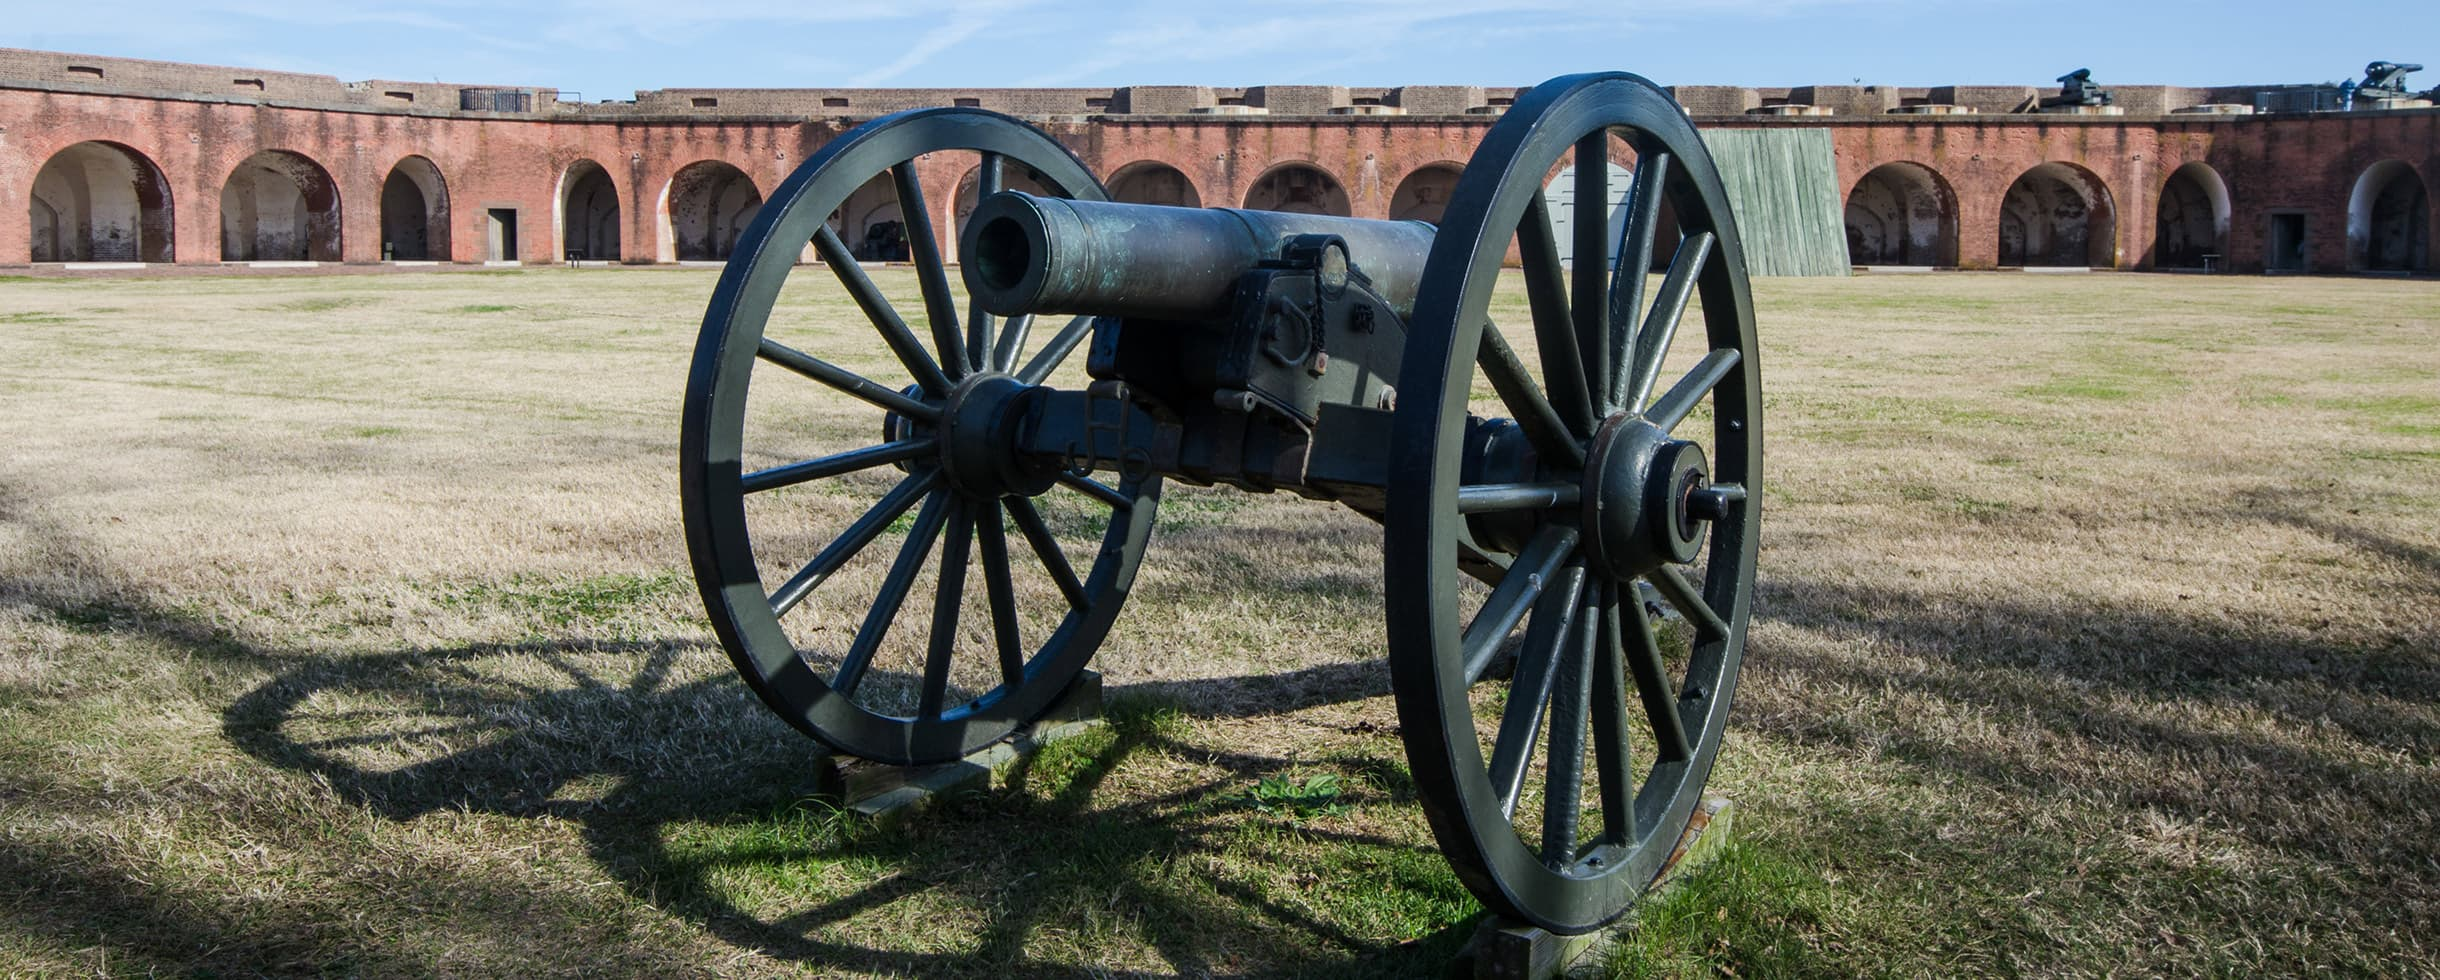 Canon on the grass at Fort Pulaski